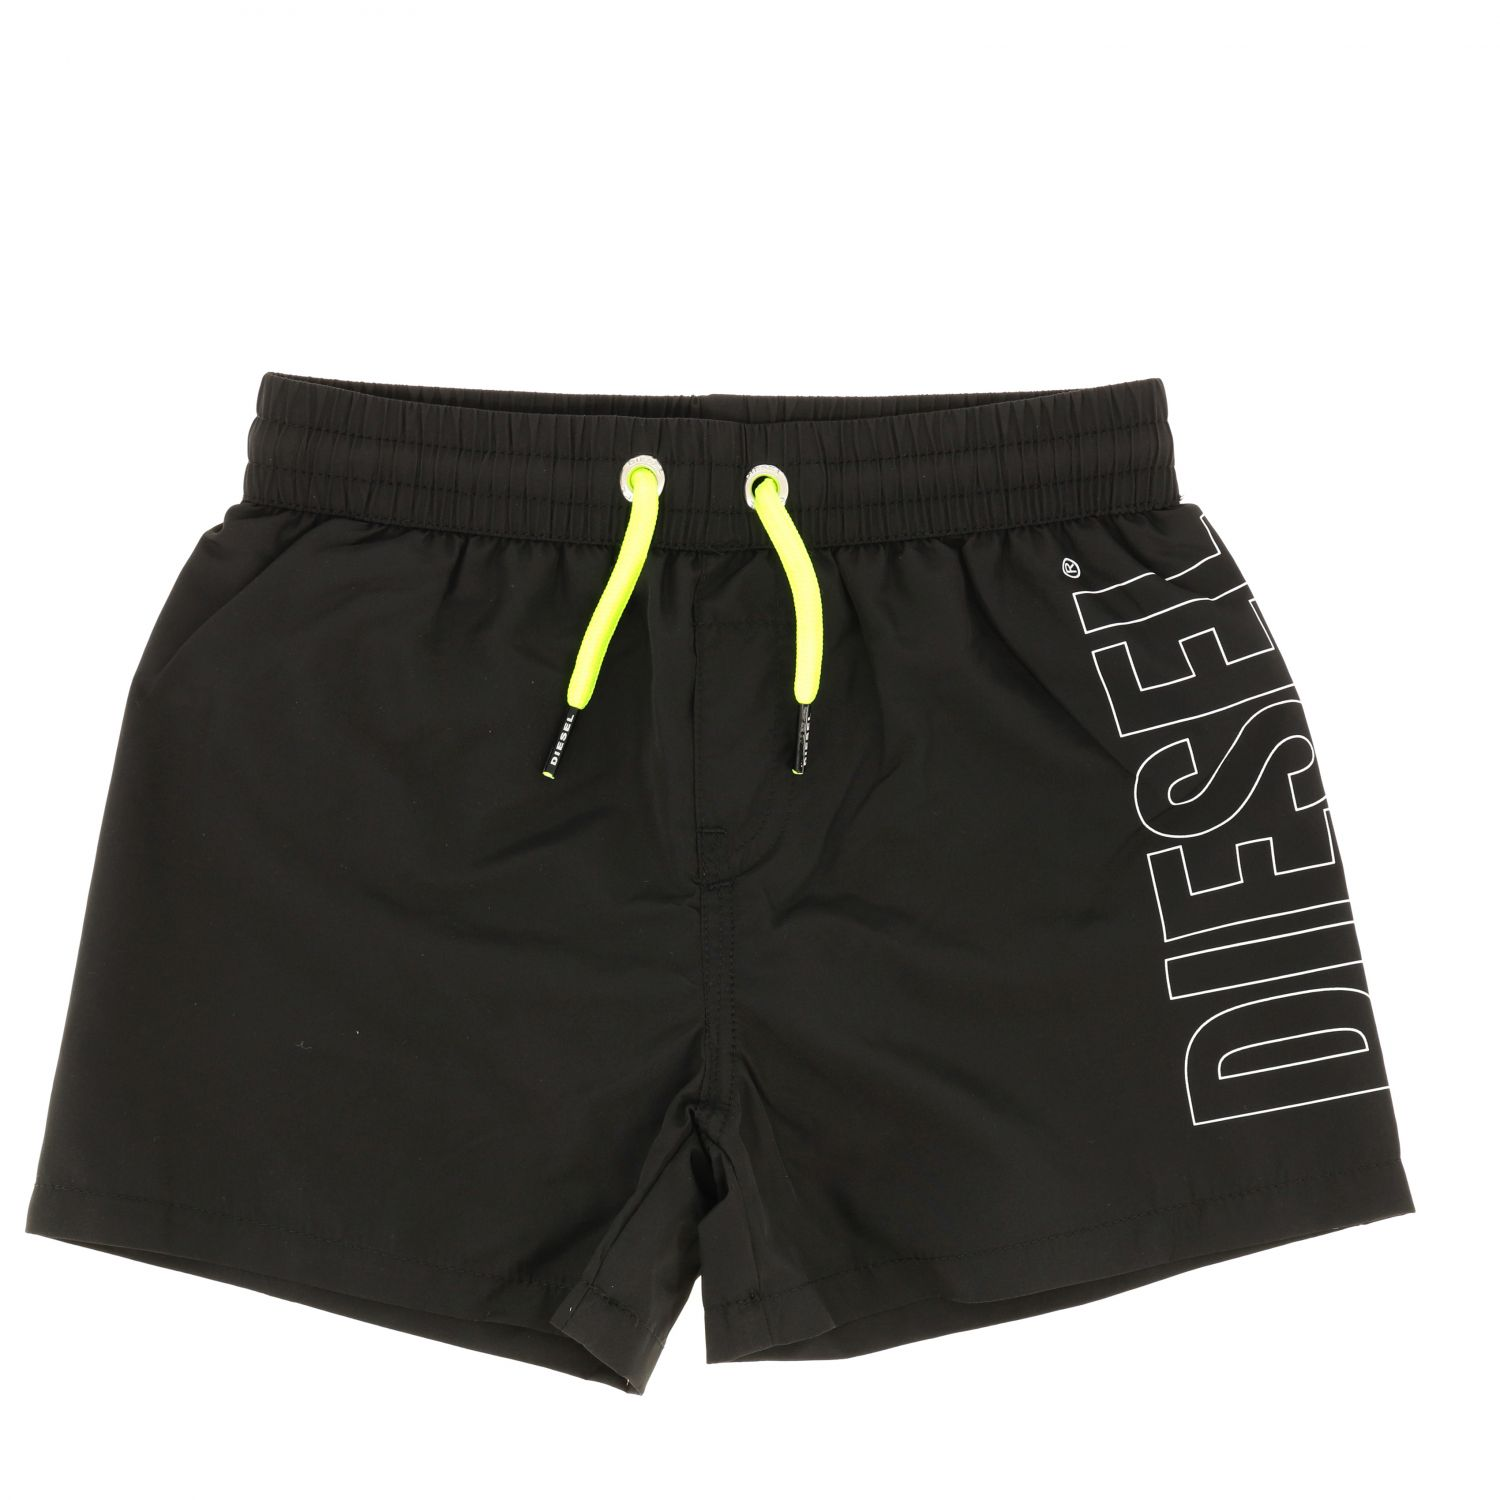 Diesel boxer swimsuit with drawstring and logo black 1